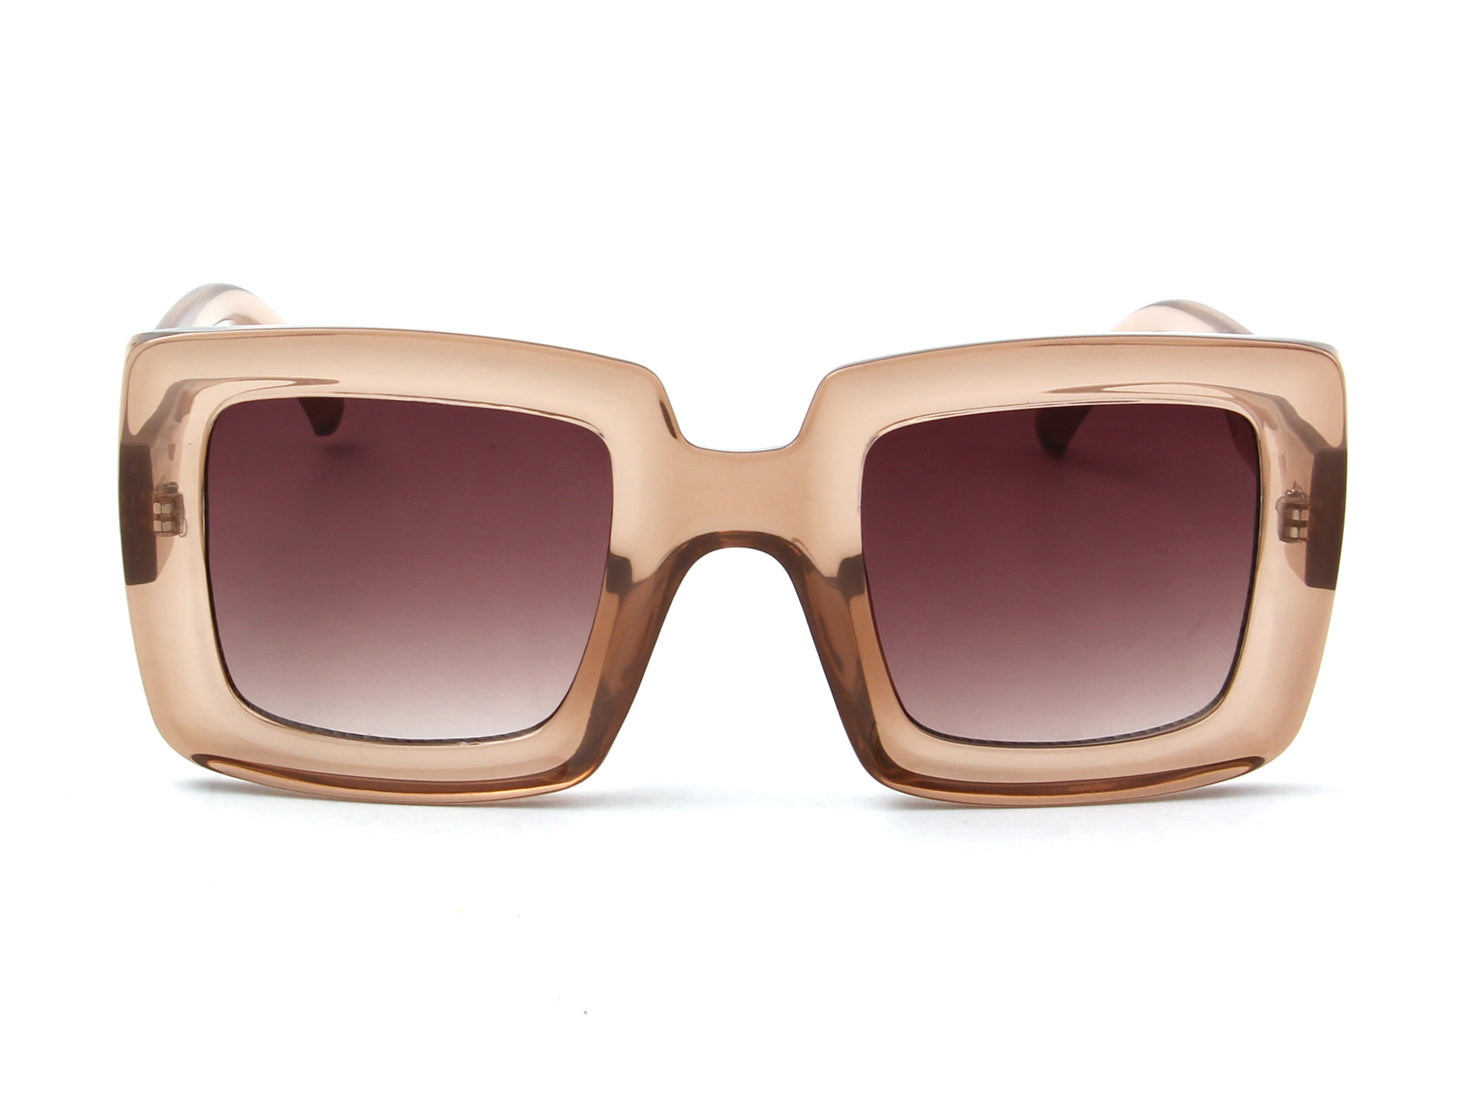 S1141 - Women Retro Bold Square Fashion Sunglasses